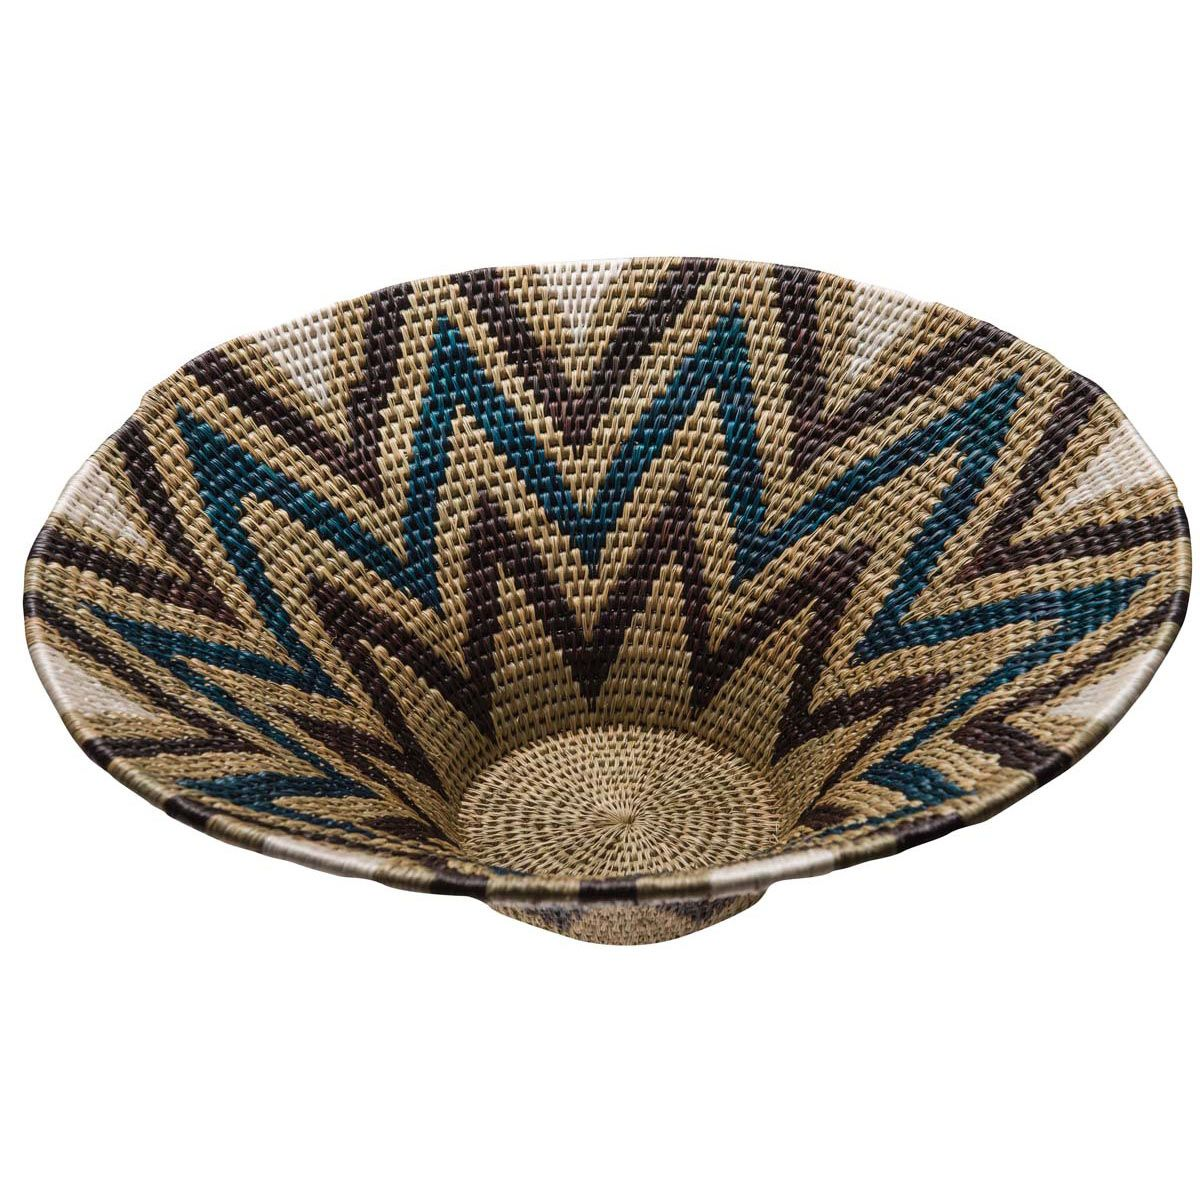 Lavumisa Basket #africa #decor